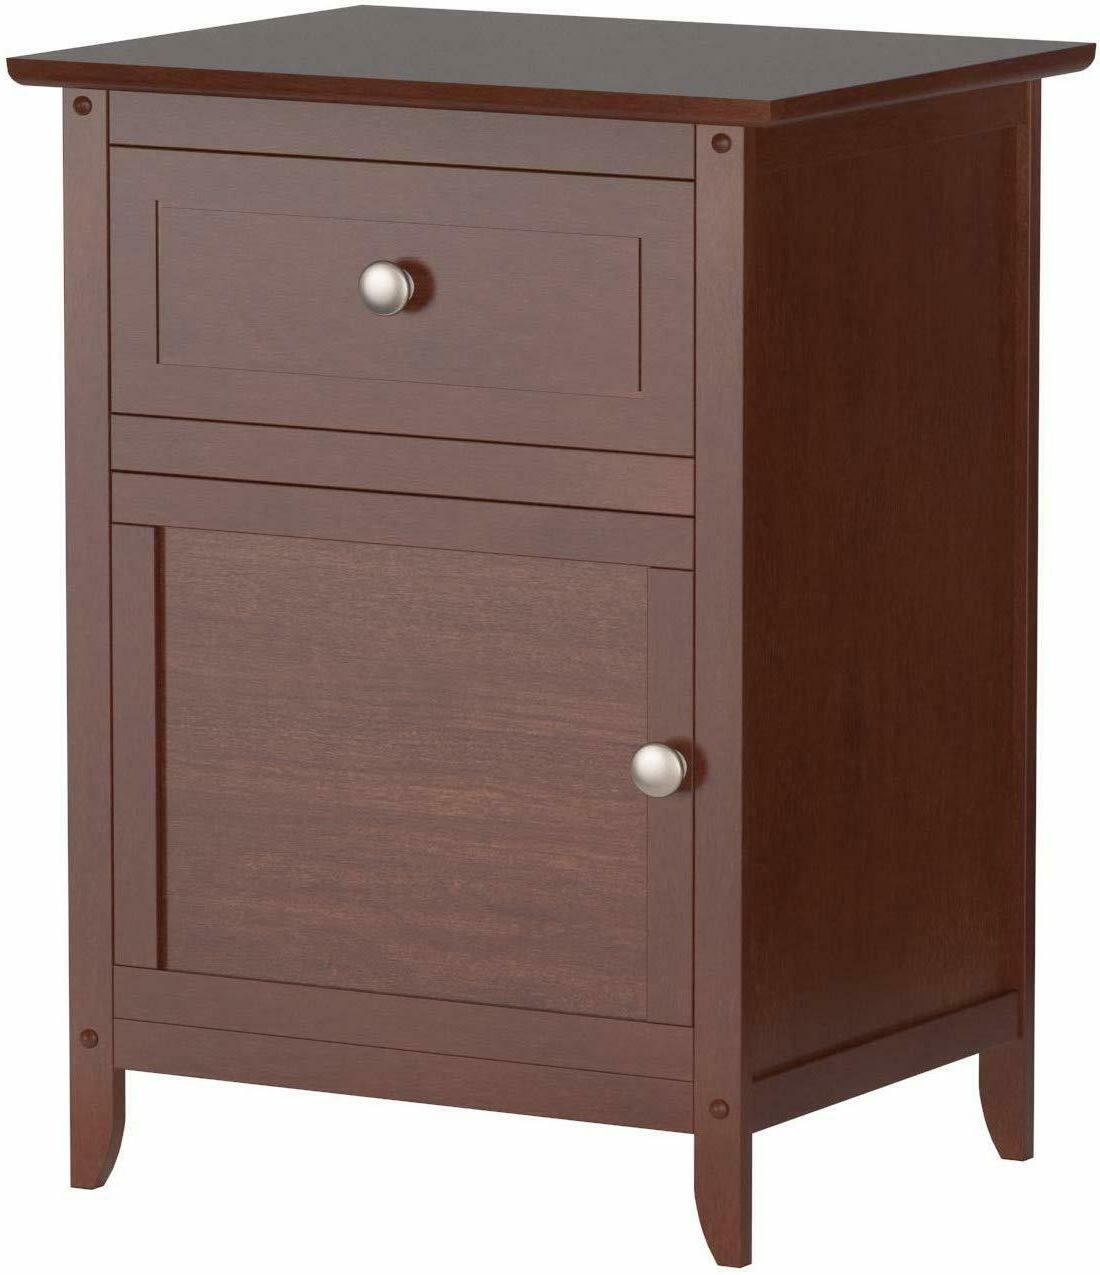 Bed Room Cabinet Stand Drawer Accent Table Finish